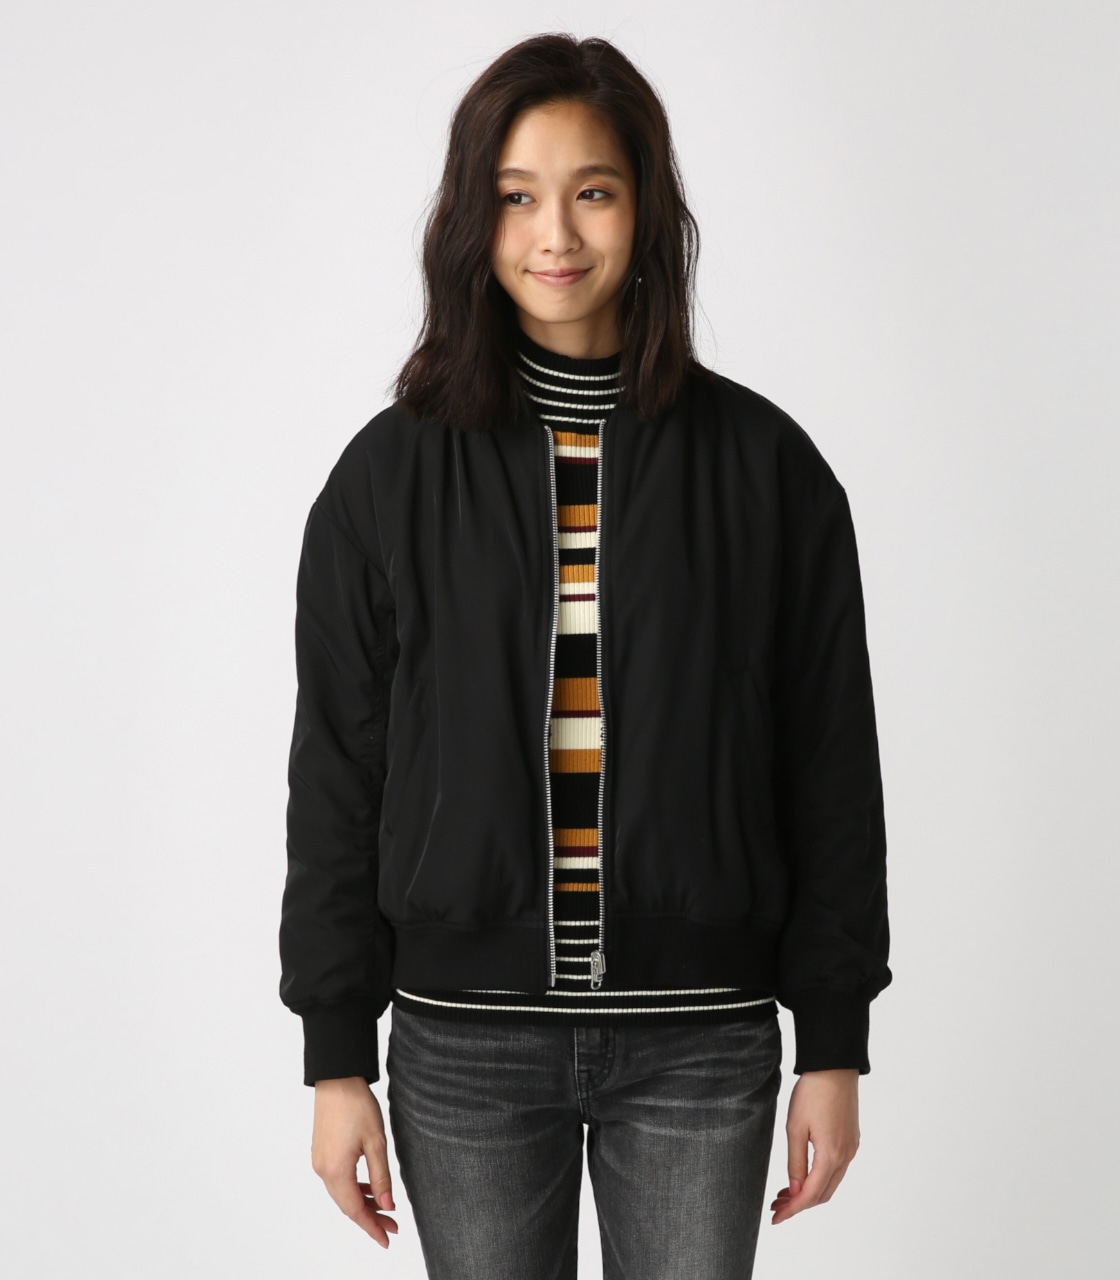 【AZUL BY MOUSSY】リバーシブルボアブルゾン 詳細画像 BLK 5